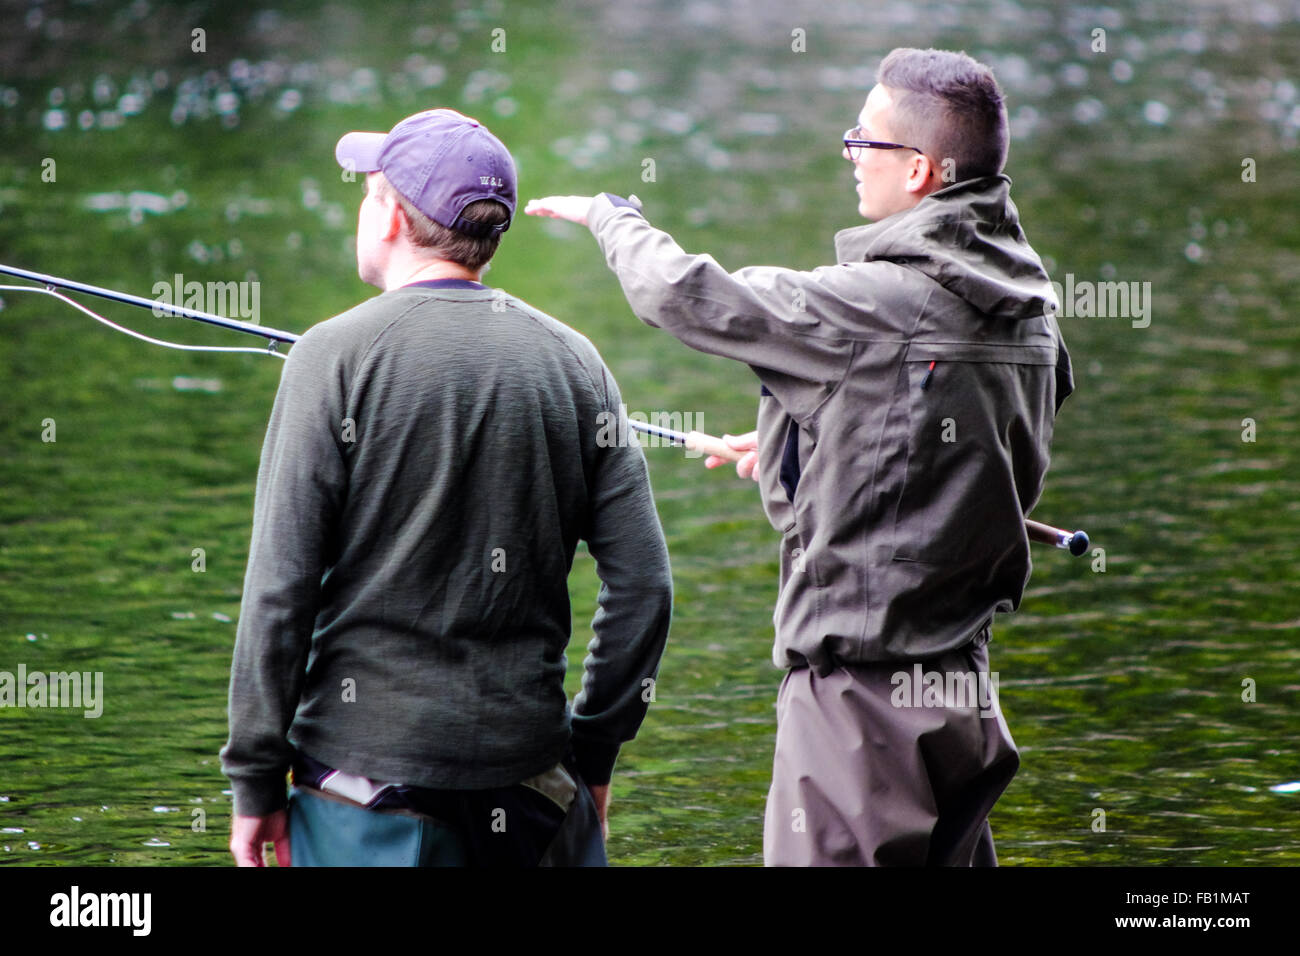 Fly fishing young men learn to fish on the Ness River in Inverness Scotland. - Stock Image